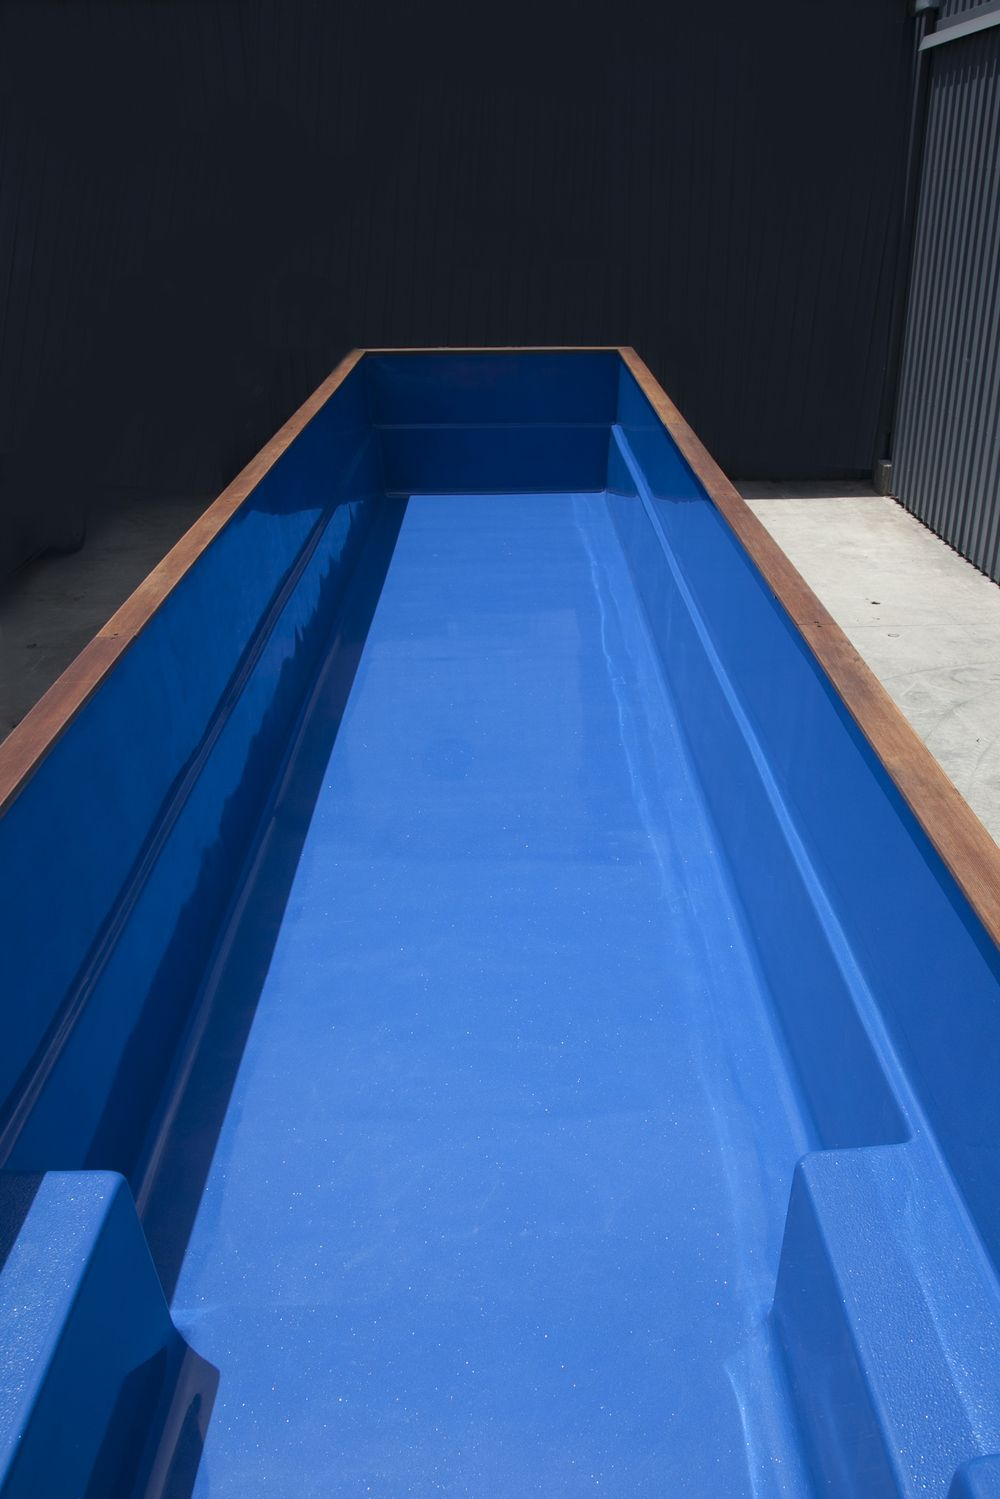 see shipping container swimming pools and find out how much they cost see pics guide price and get a bespoke cargo container conversion quote in the uk